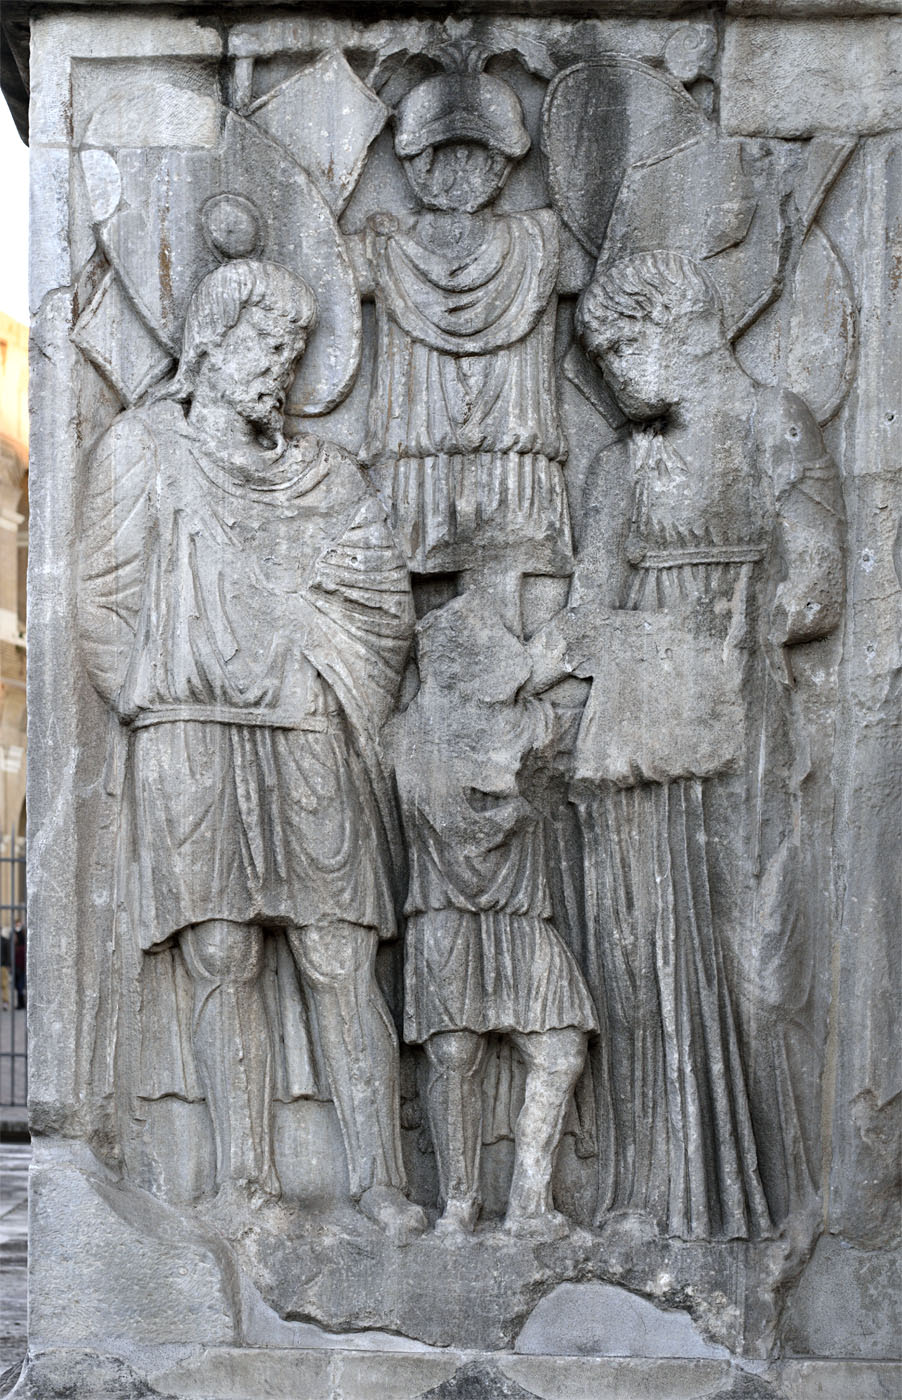 Captured barbars and the trophy. Relief of the column plinth. Marble. 312—315 CE. Rome, Arch of Constantine, South face